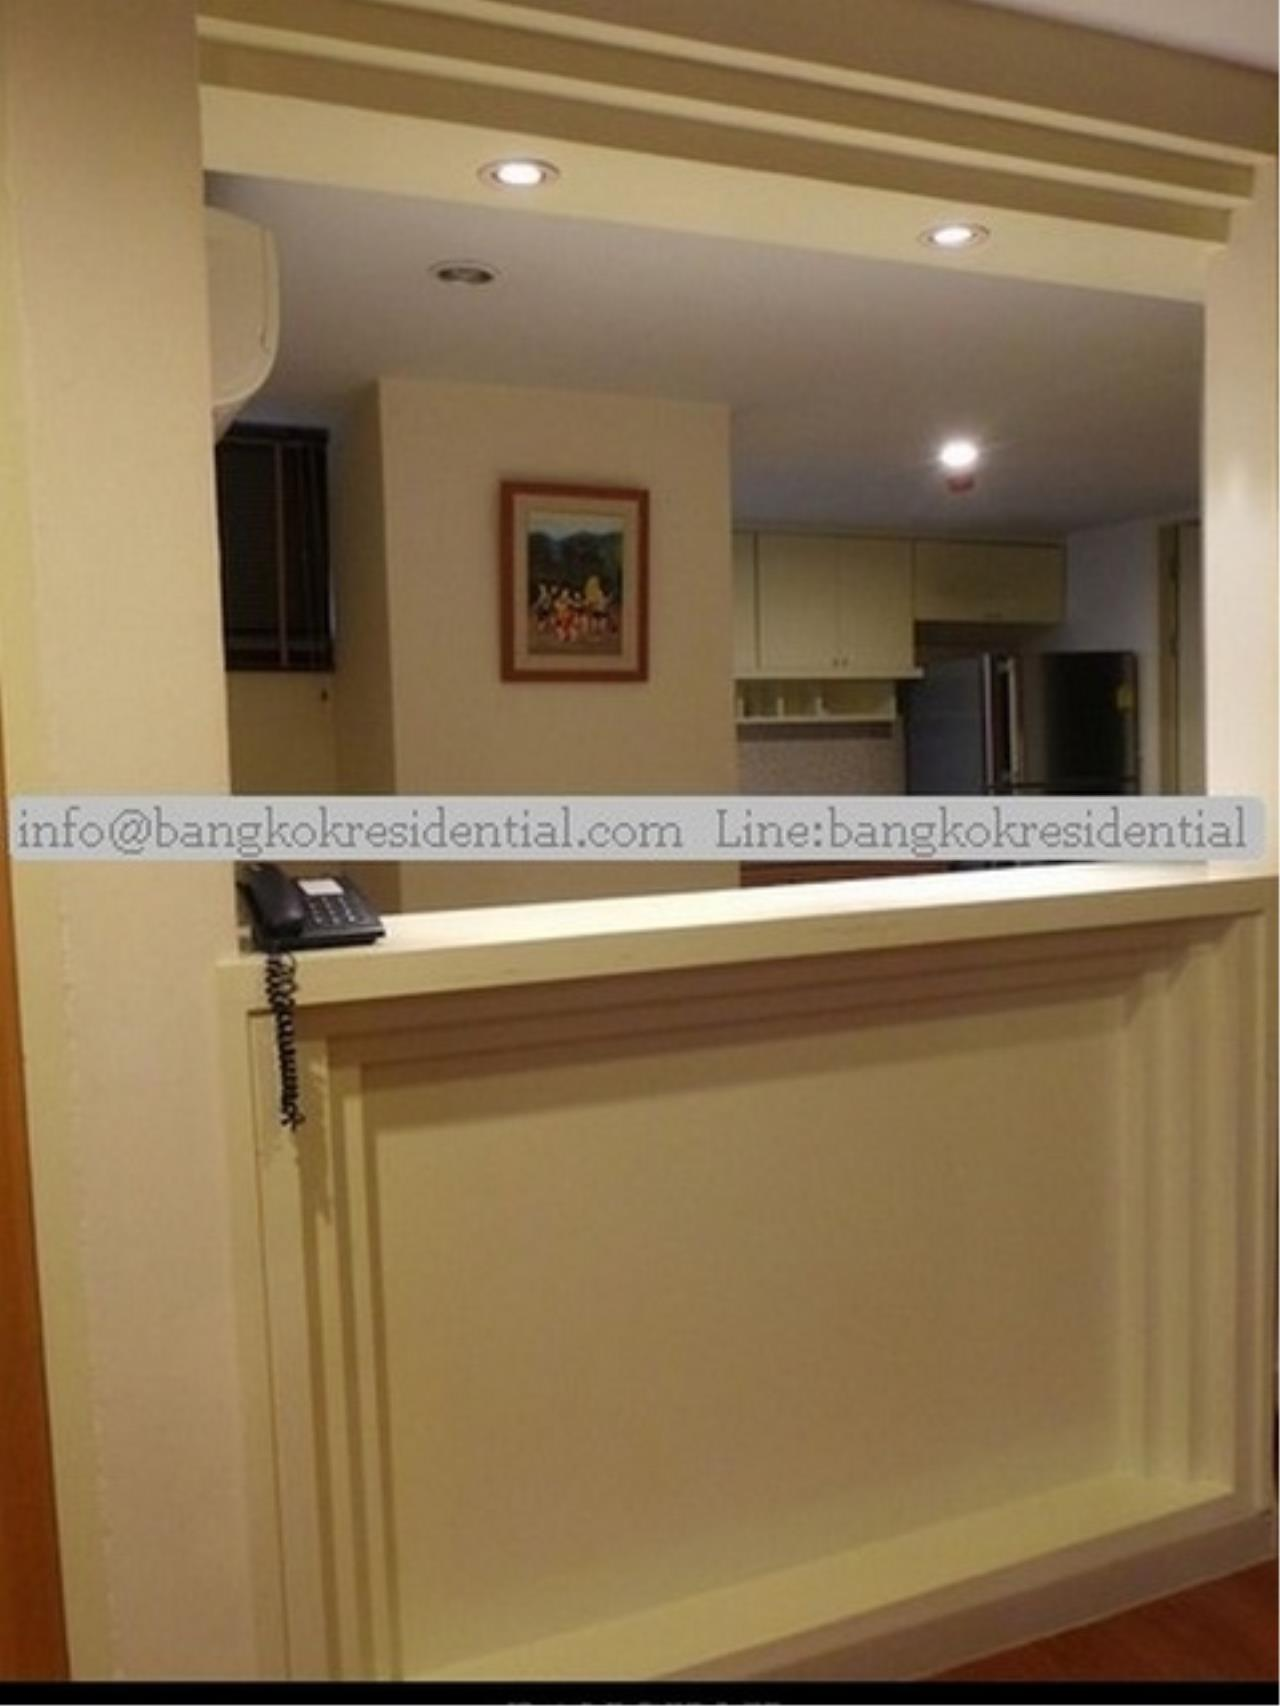 Bangkok Residential Agency's 3BR Tai Ping Tower For Rent (BR4448CD) 3